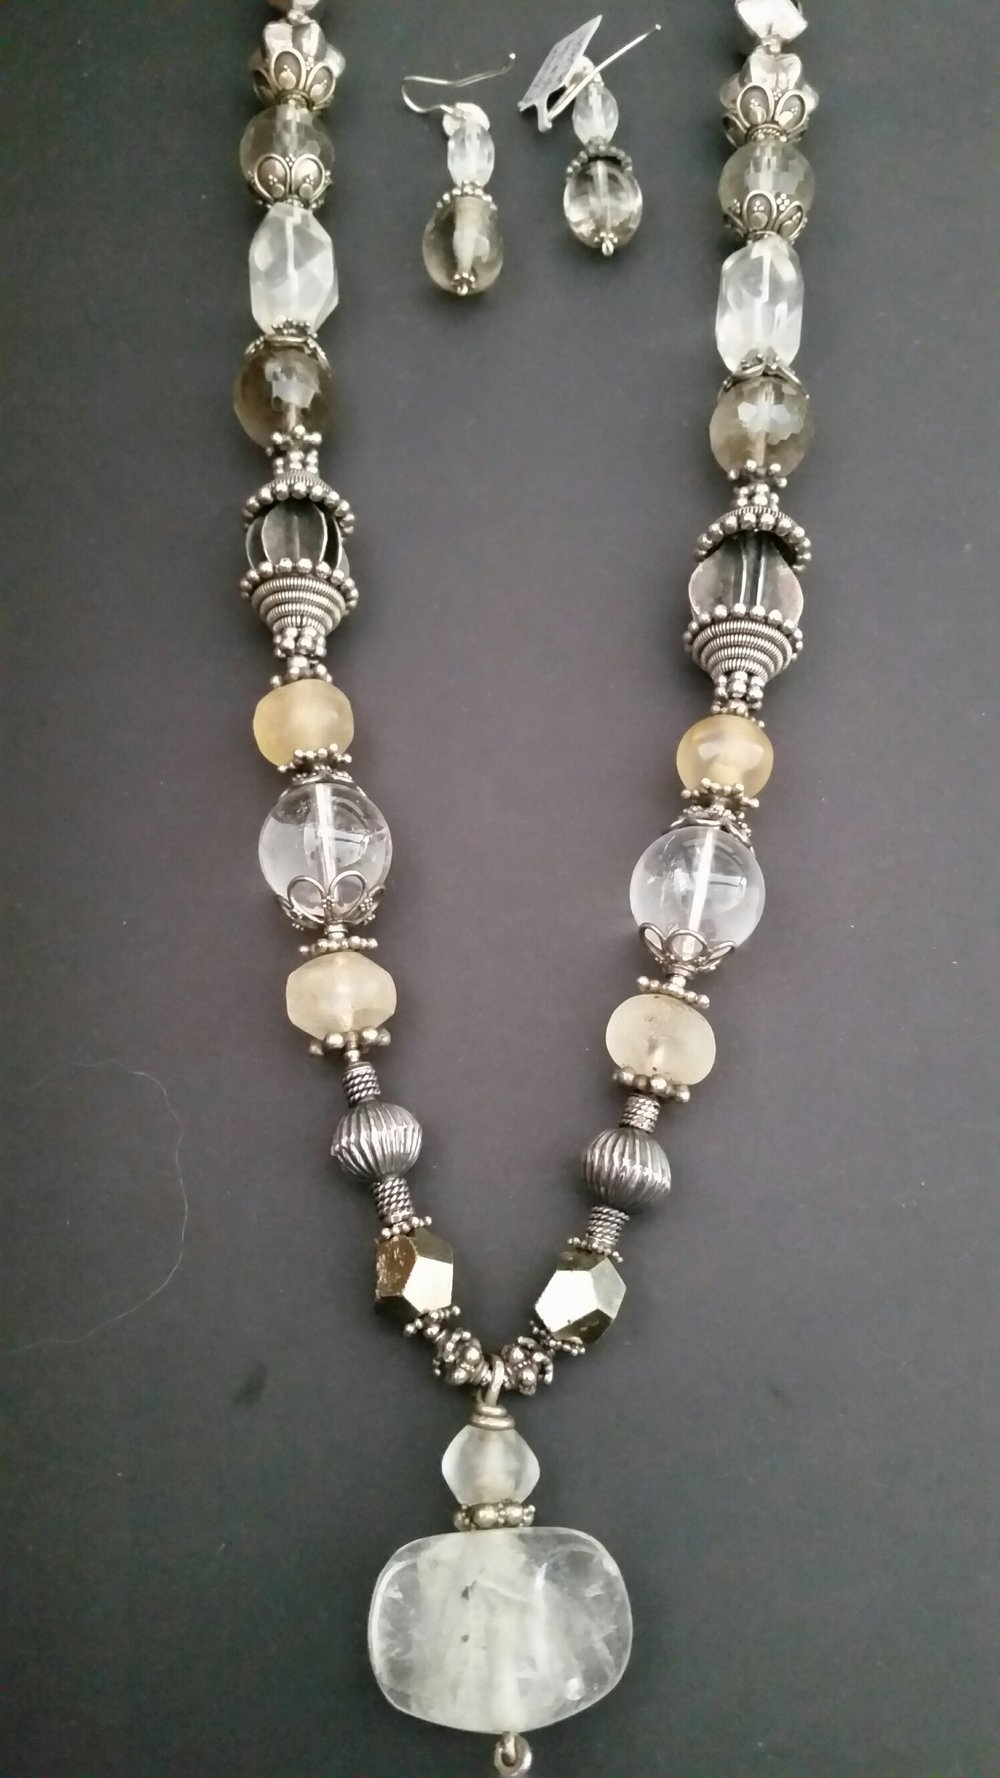 Title: Neckpiece Ancient Bactarian Crystal Quartz  #3